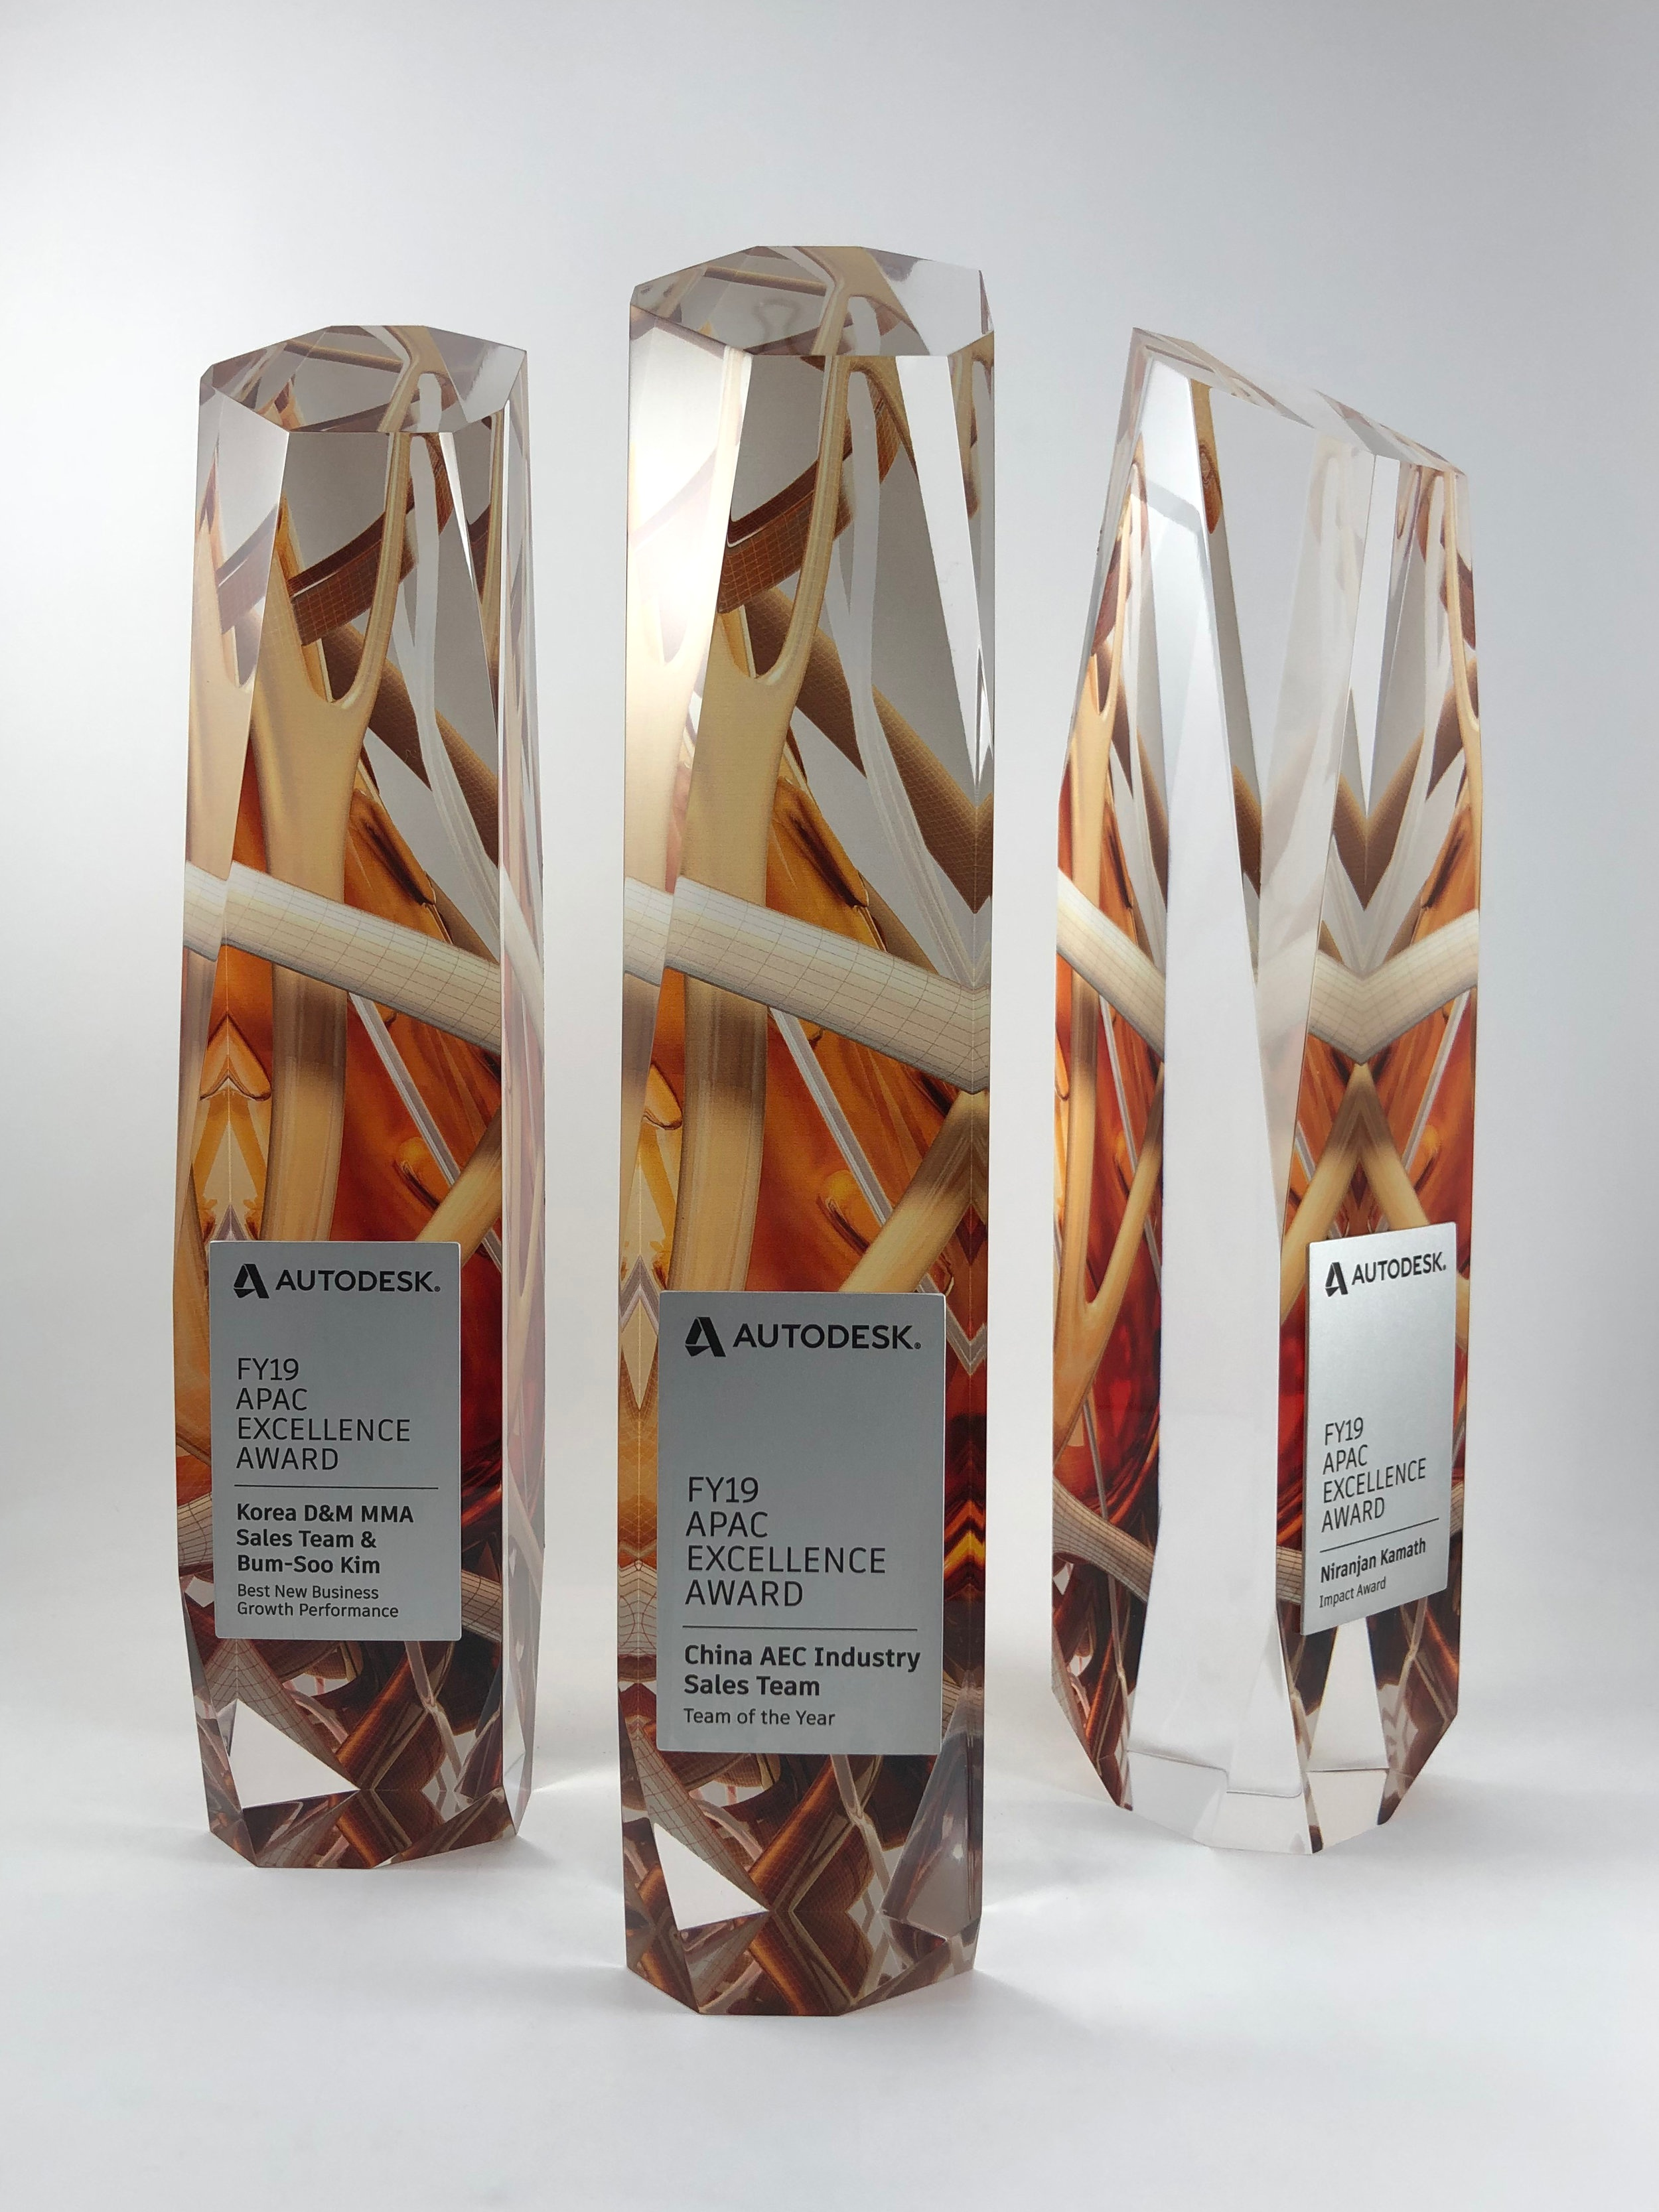 autodesk-apac-excellence-awards-acrylic-metal-graphic-art-print-trophy-06.jpg